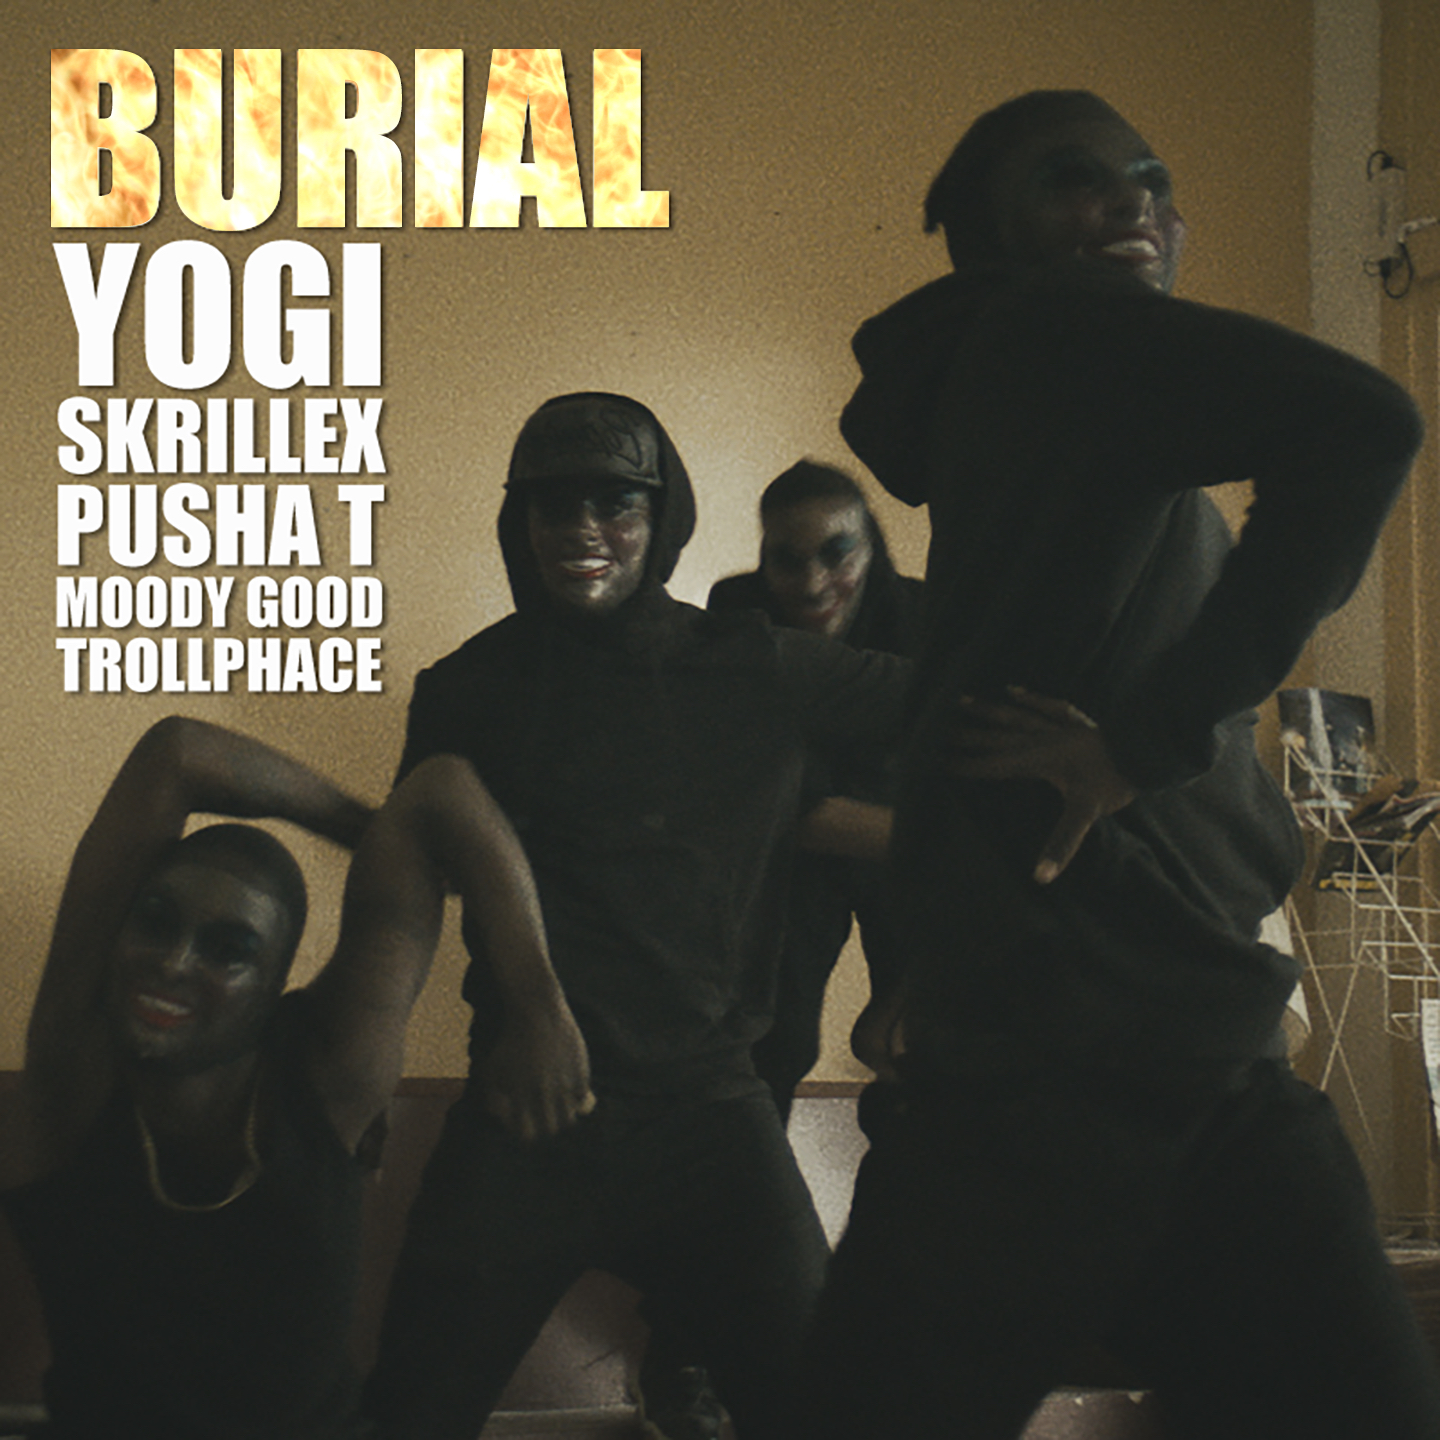 RELEASES | Yogi & Skrillex - Burial (ft. Pusha T, Moody Good, Trollphace)